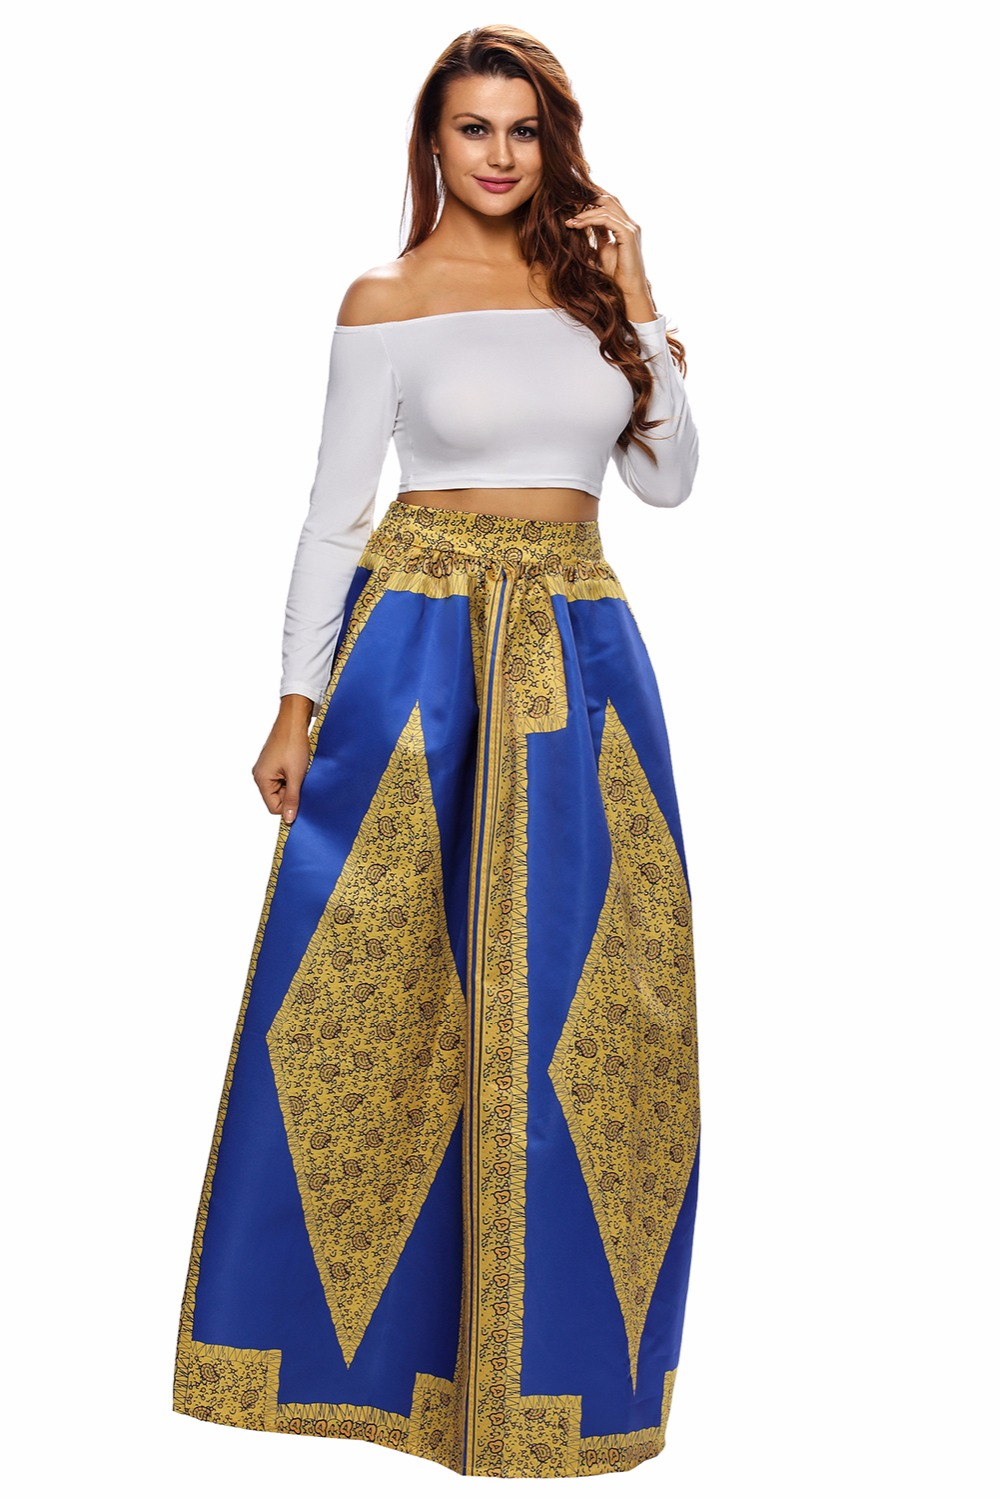 Long Skirt Women 2XL Plus Size Yellow Blue African Print Maxi Skirt Long Skirt vestido longo vintage skirt cheap clothes china